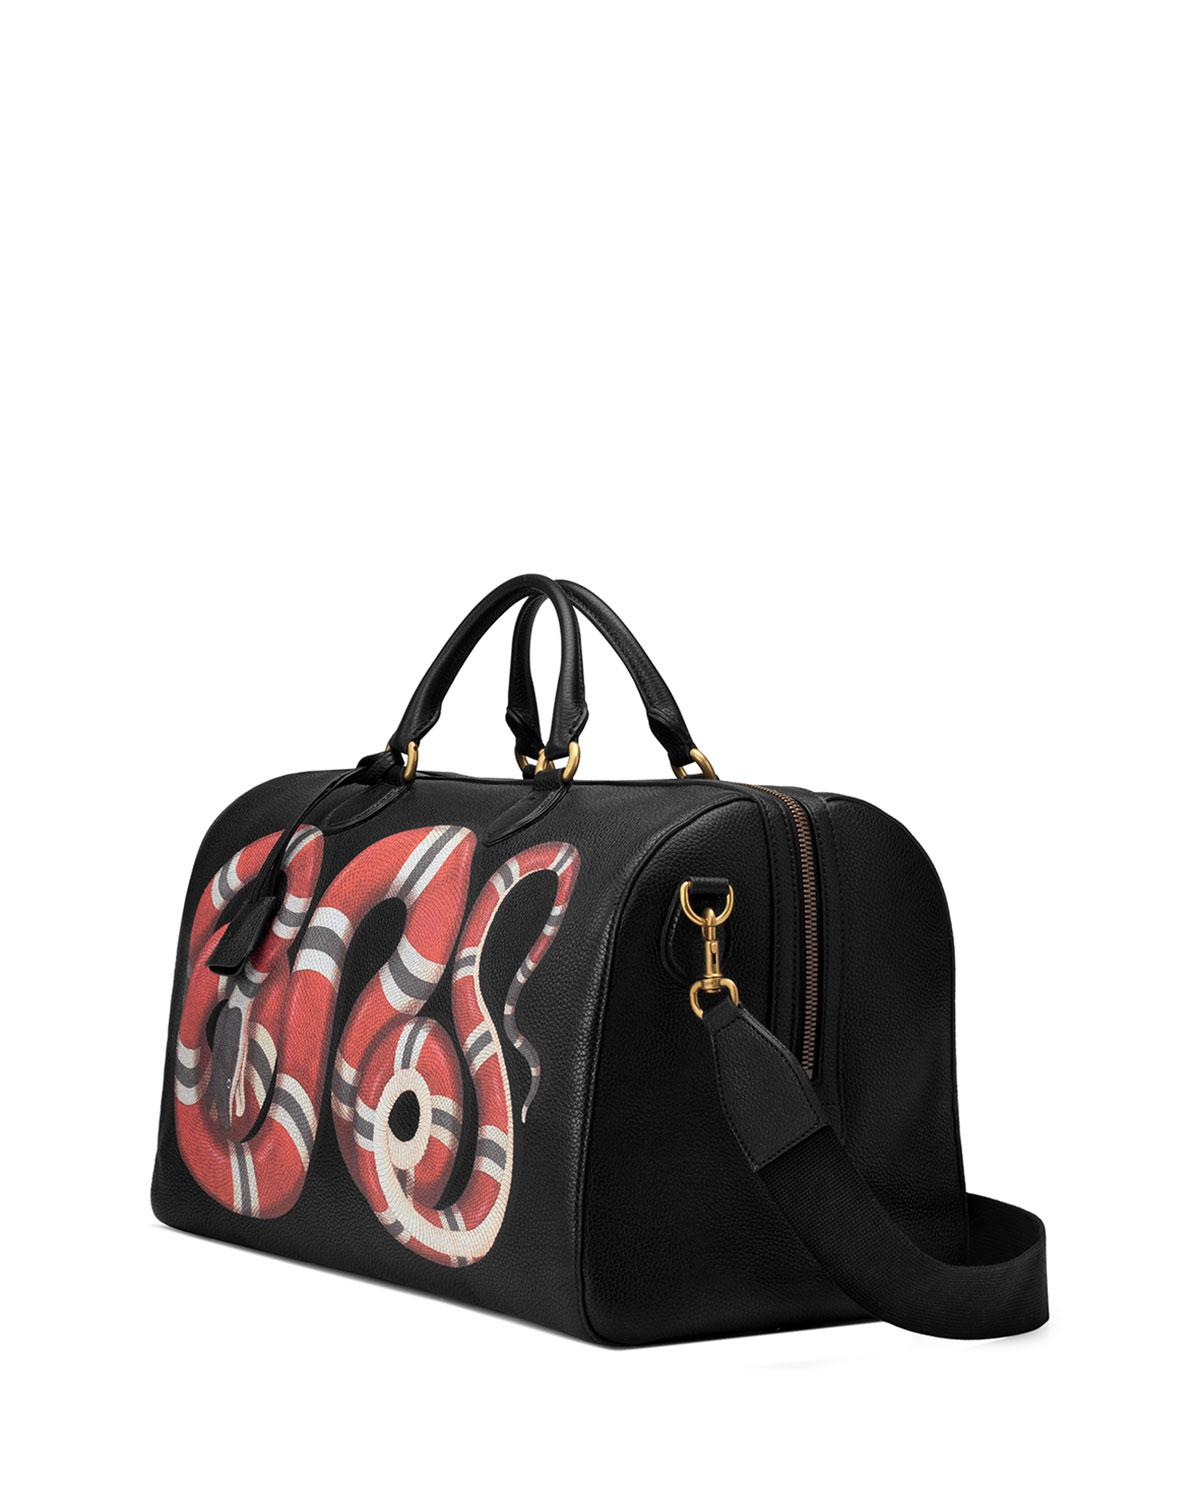 b35975287906 Gucci Men's King Snake-print Duffel Bag in Black for Men - Lyst